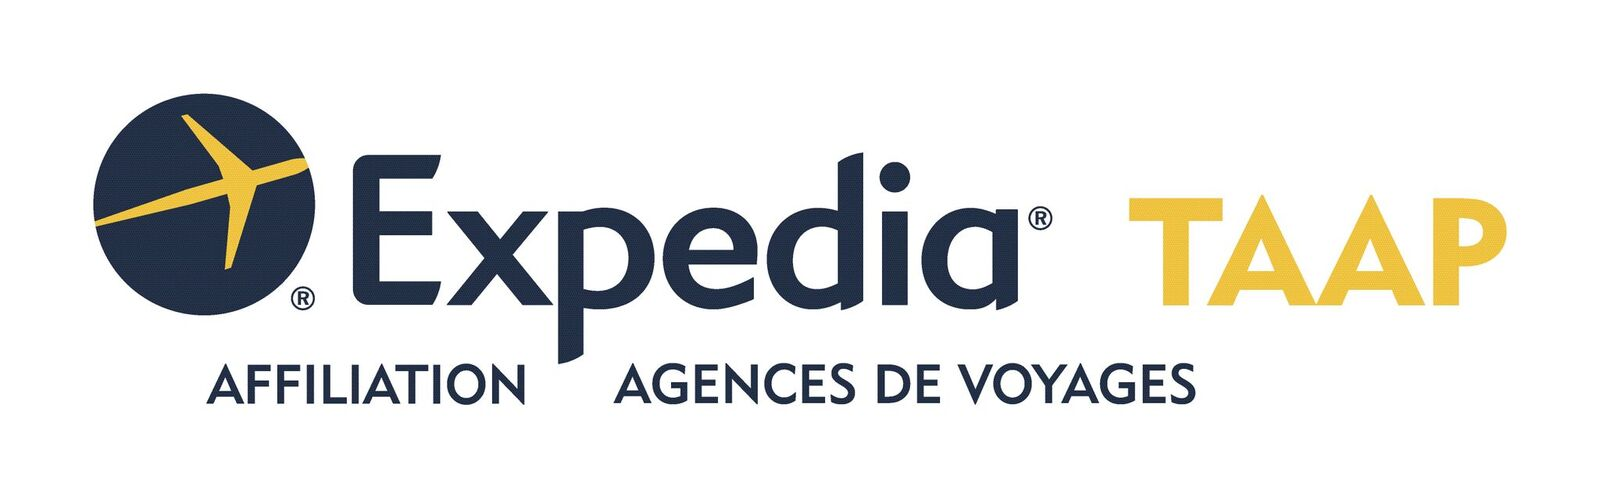 Expedia Travel Agent Affiliate Program (TAAP) spécialement destiné aux agents de voyages